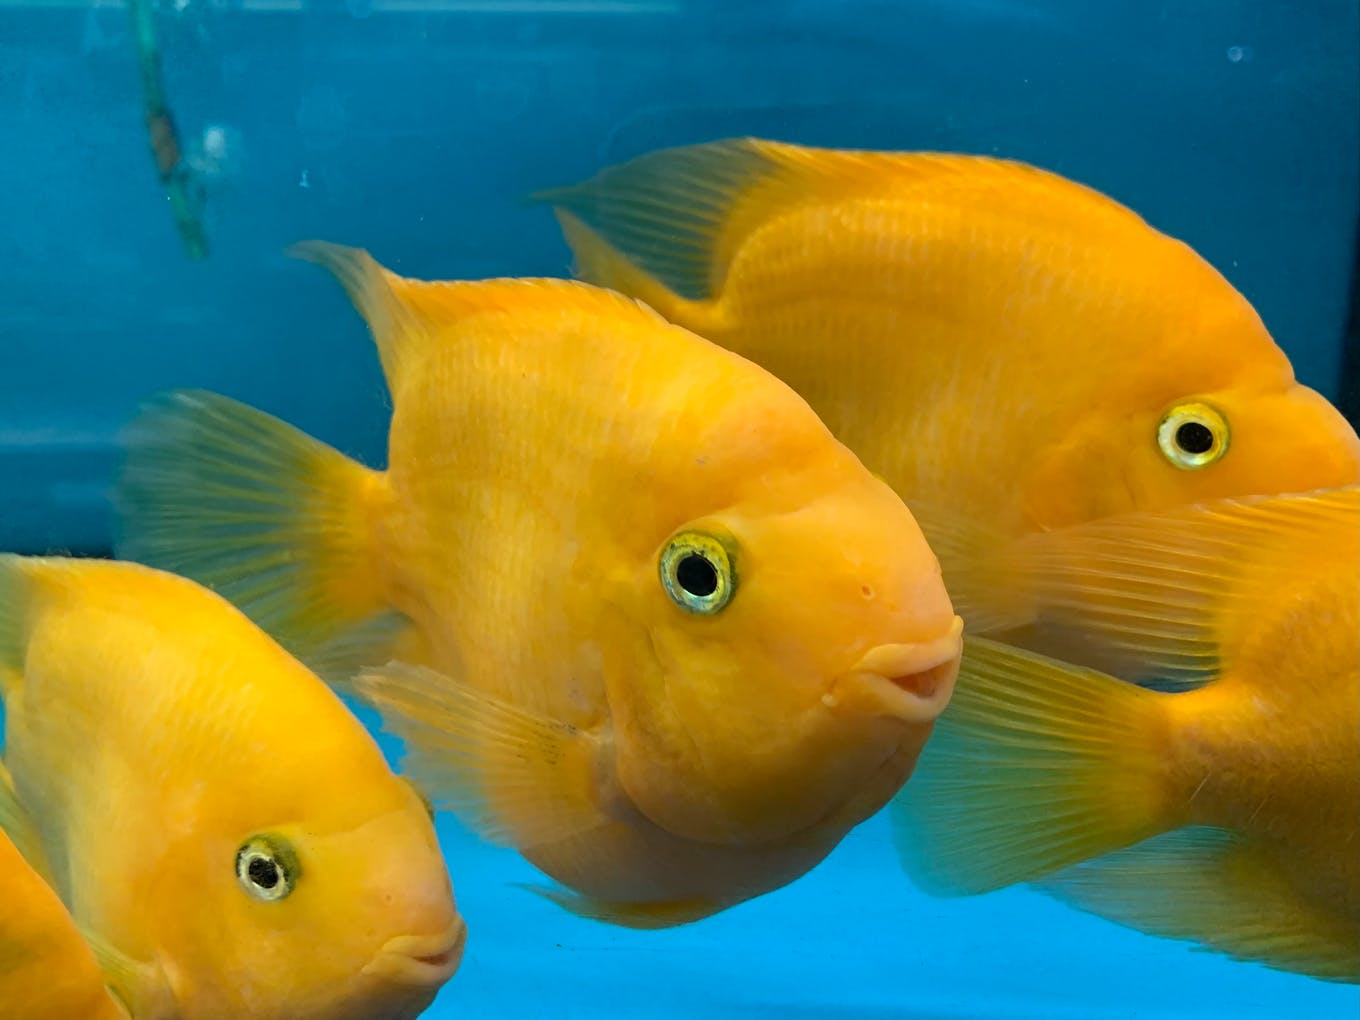 Fishhave been known to have long-term memories, exhibit culture and build complex nests.